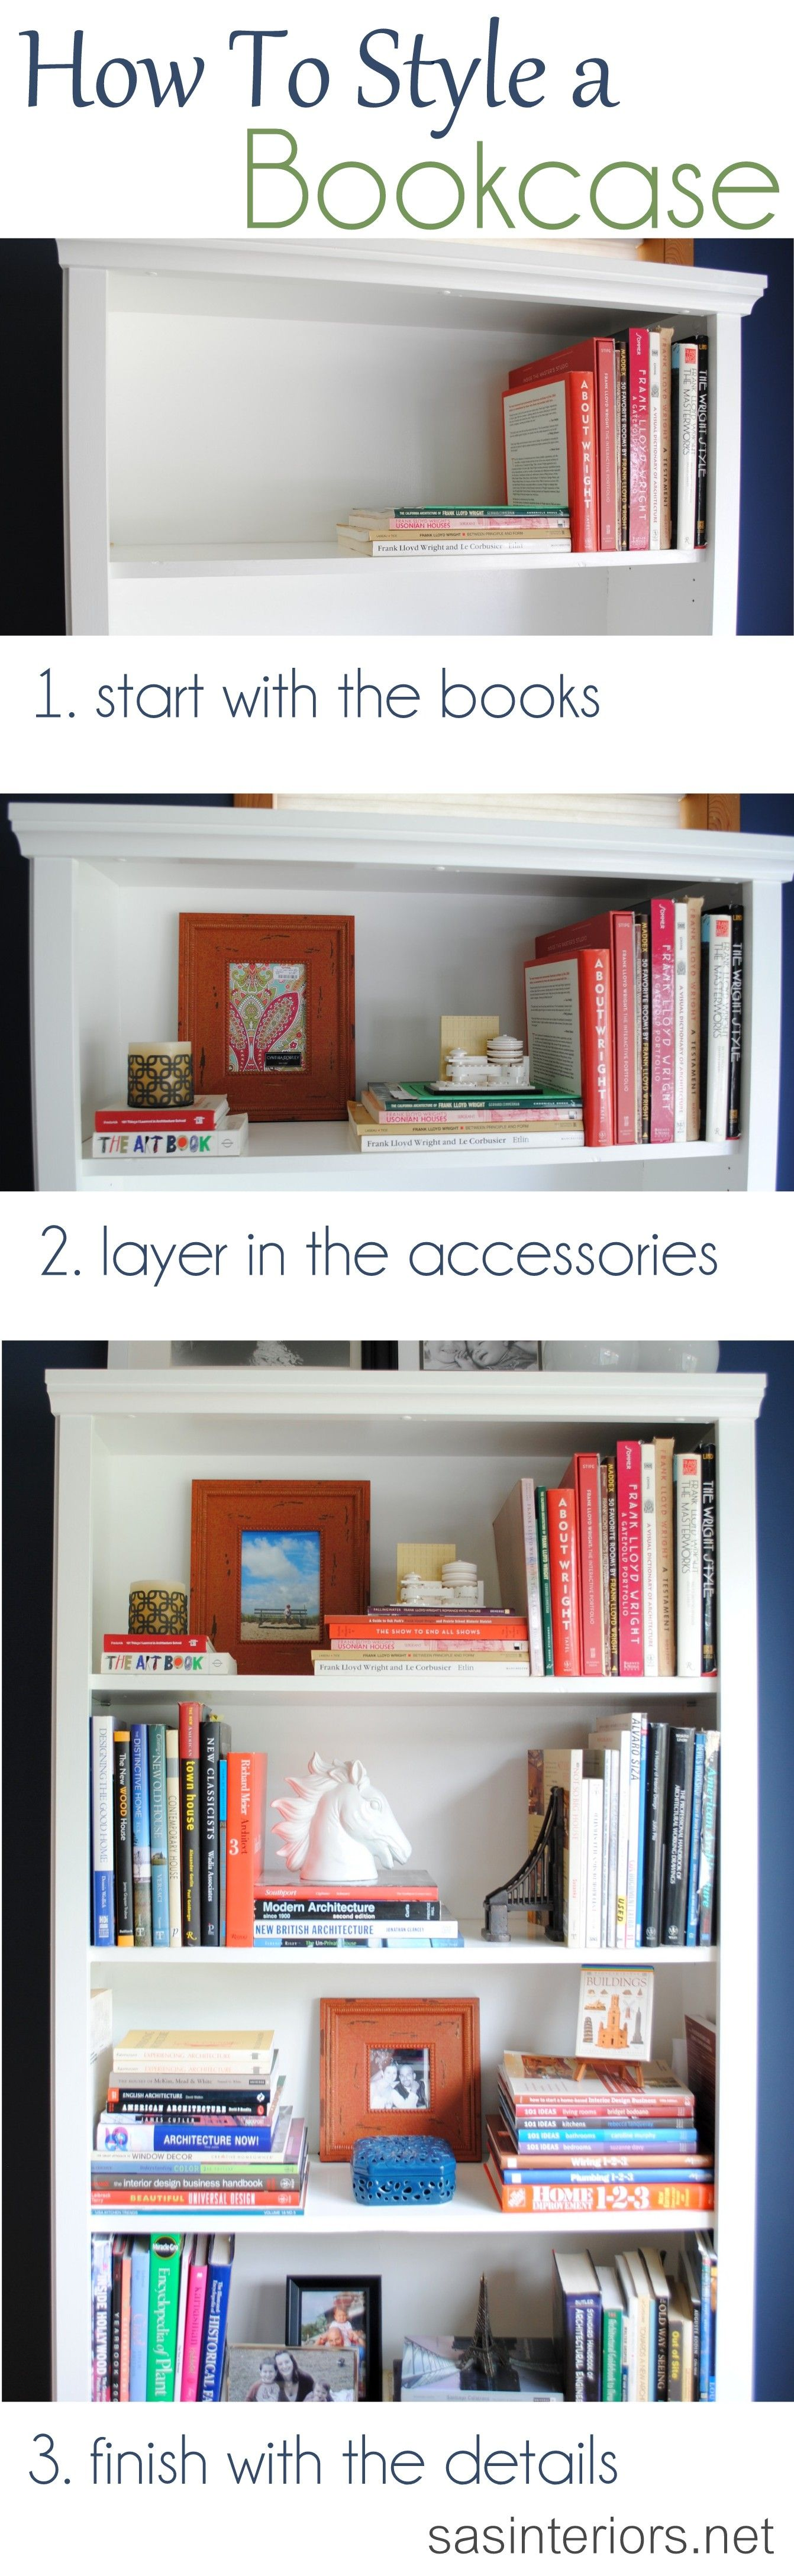 Inspiration Tips And Ideas On How Where To Begin Accessorizing A Bookcase Or Shelf In Your Home By Jenna Burger Styling Decorating